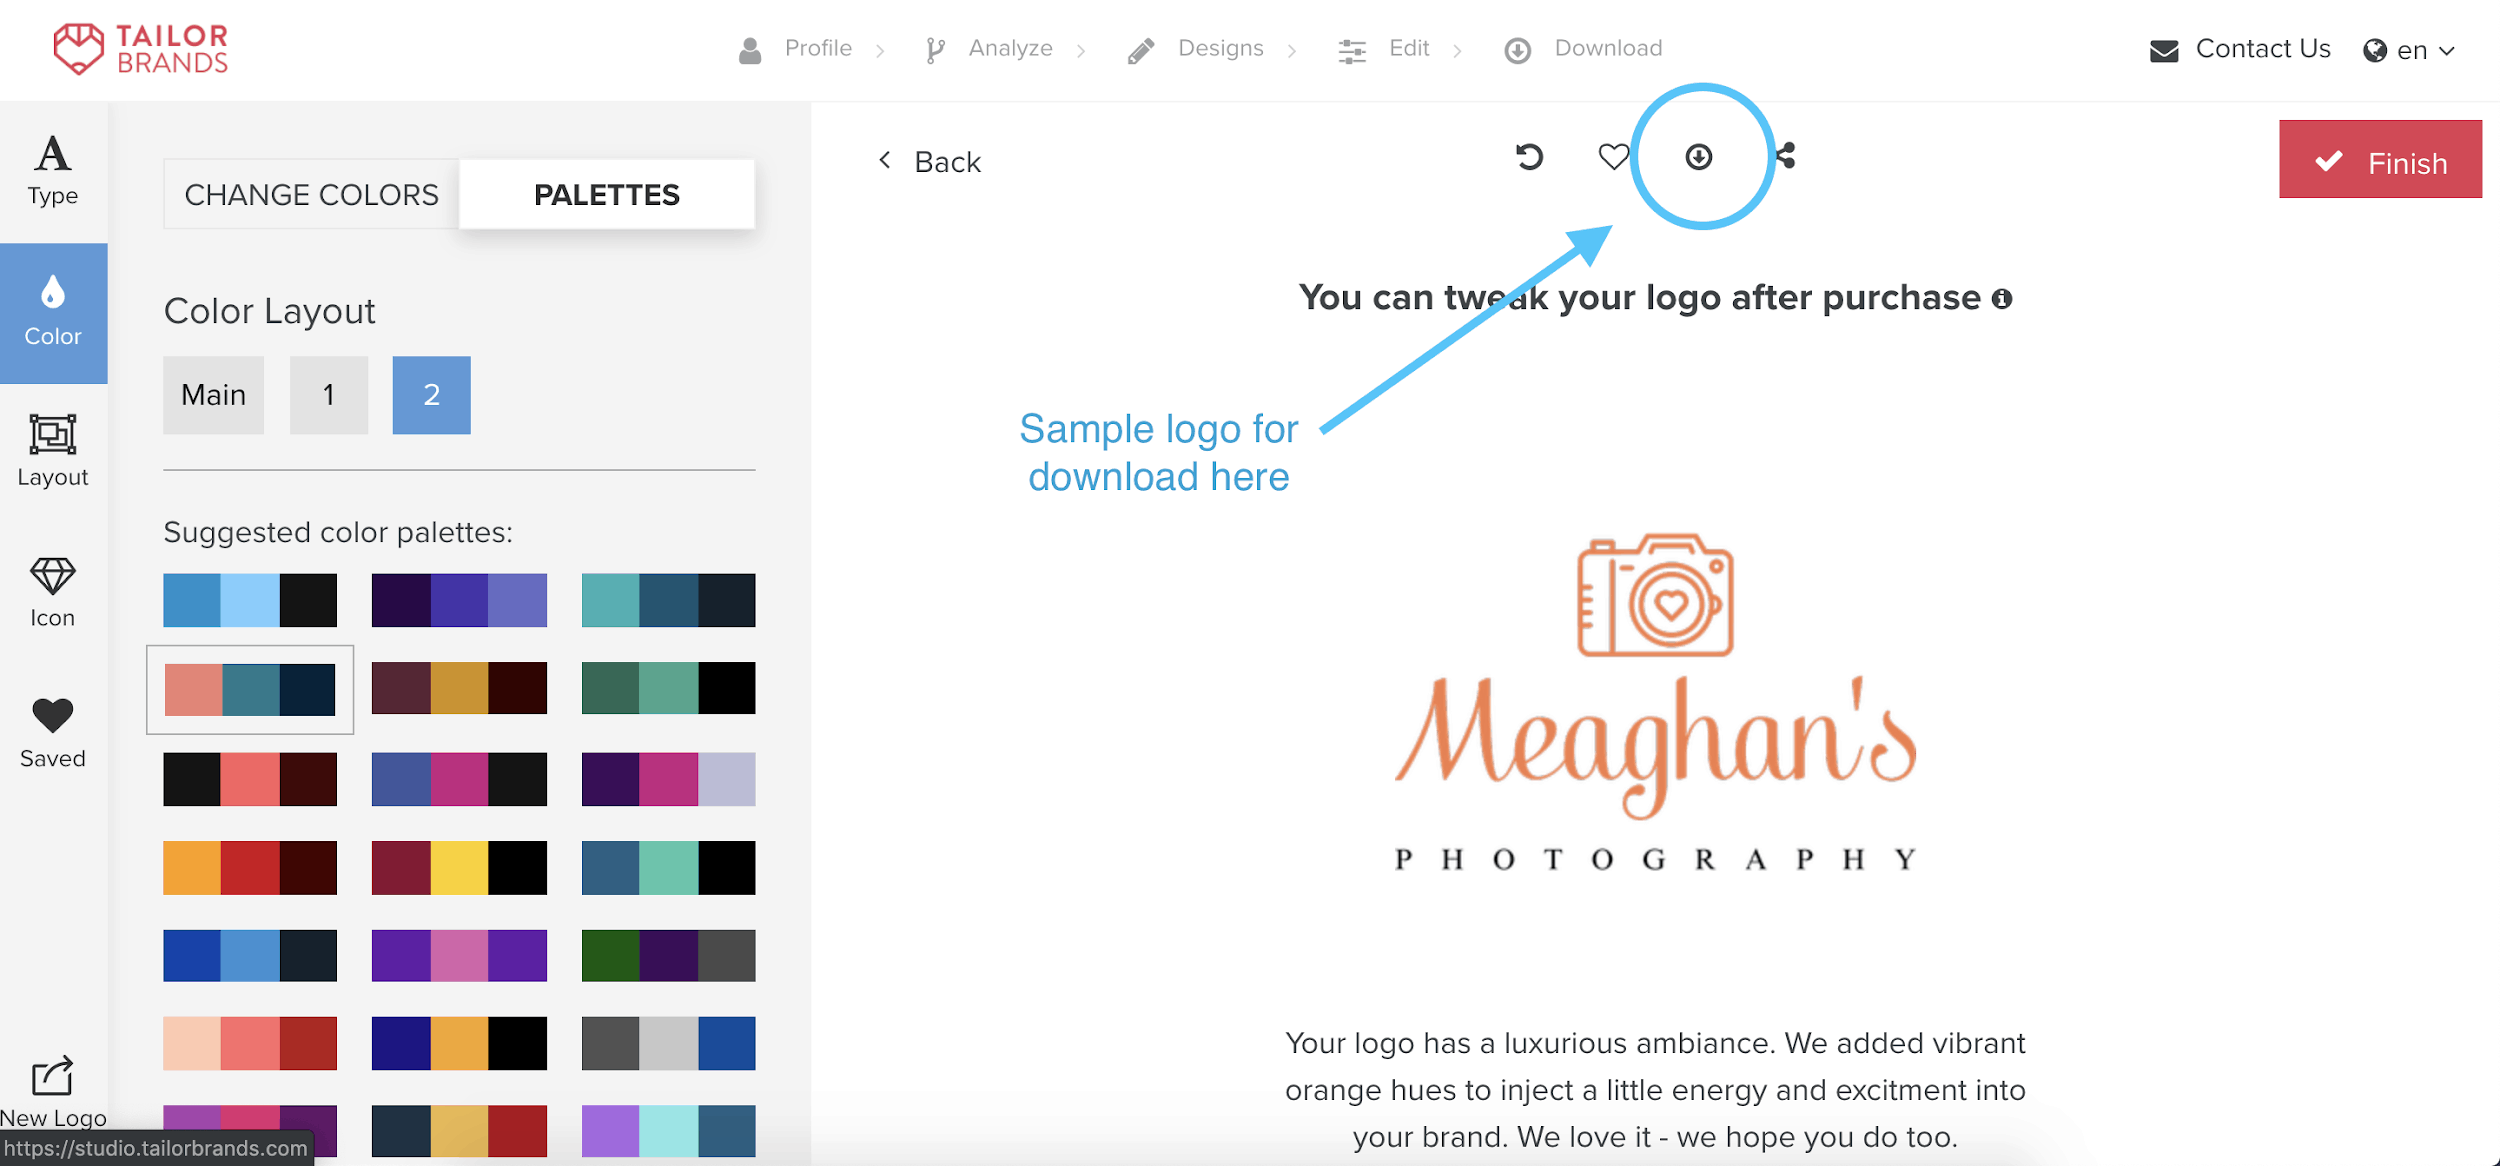 Tailor Brands screenshot - How to download a free sample logo